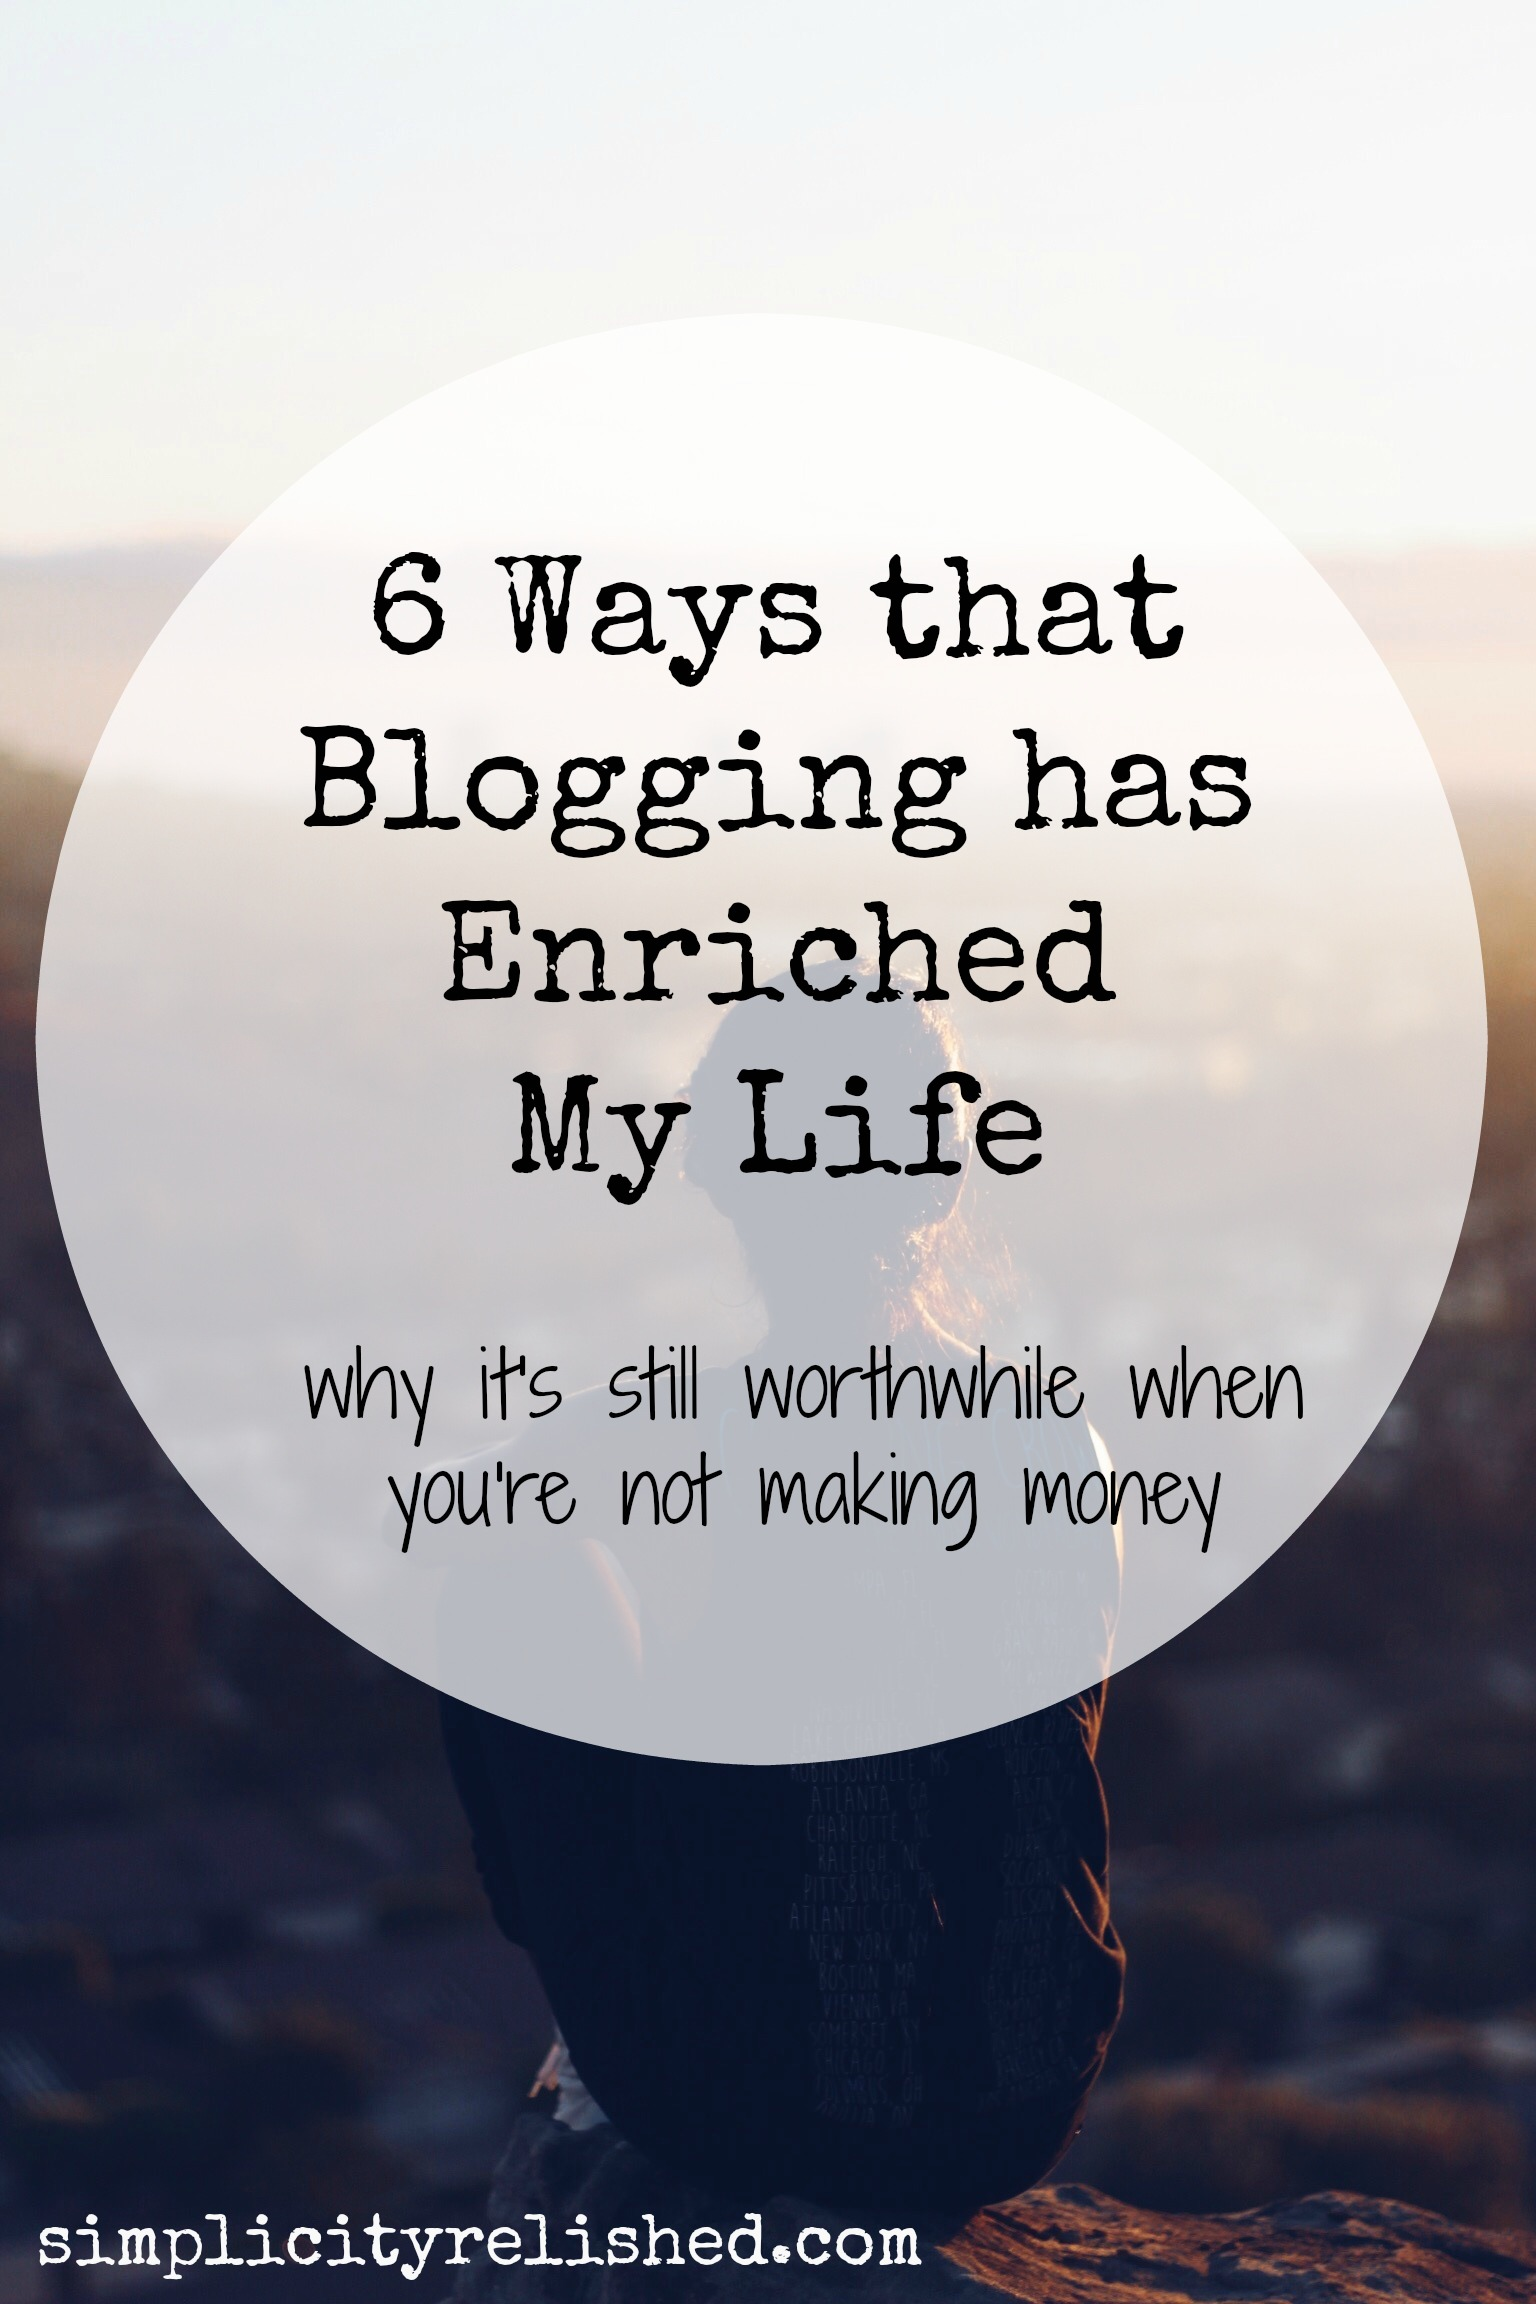 6 Ways that Blogging has Enriched my Life | Simplicity Relished